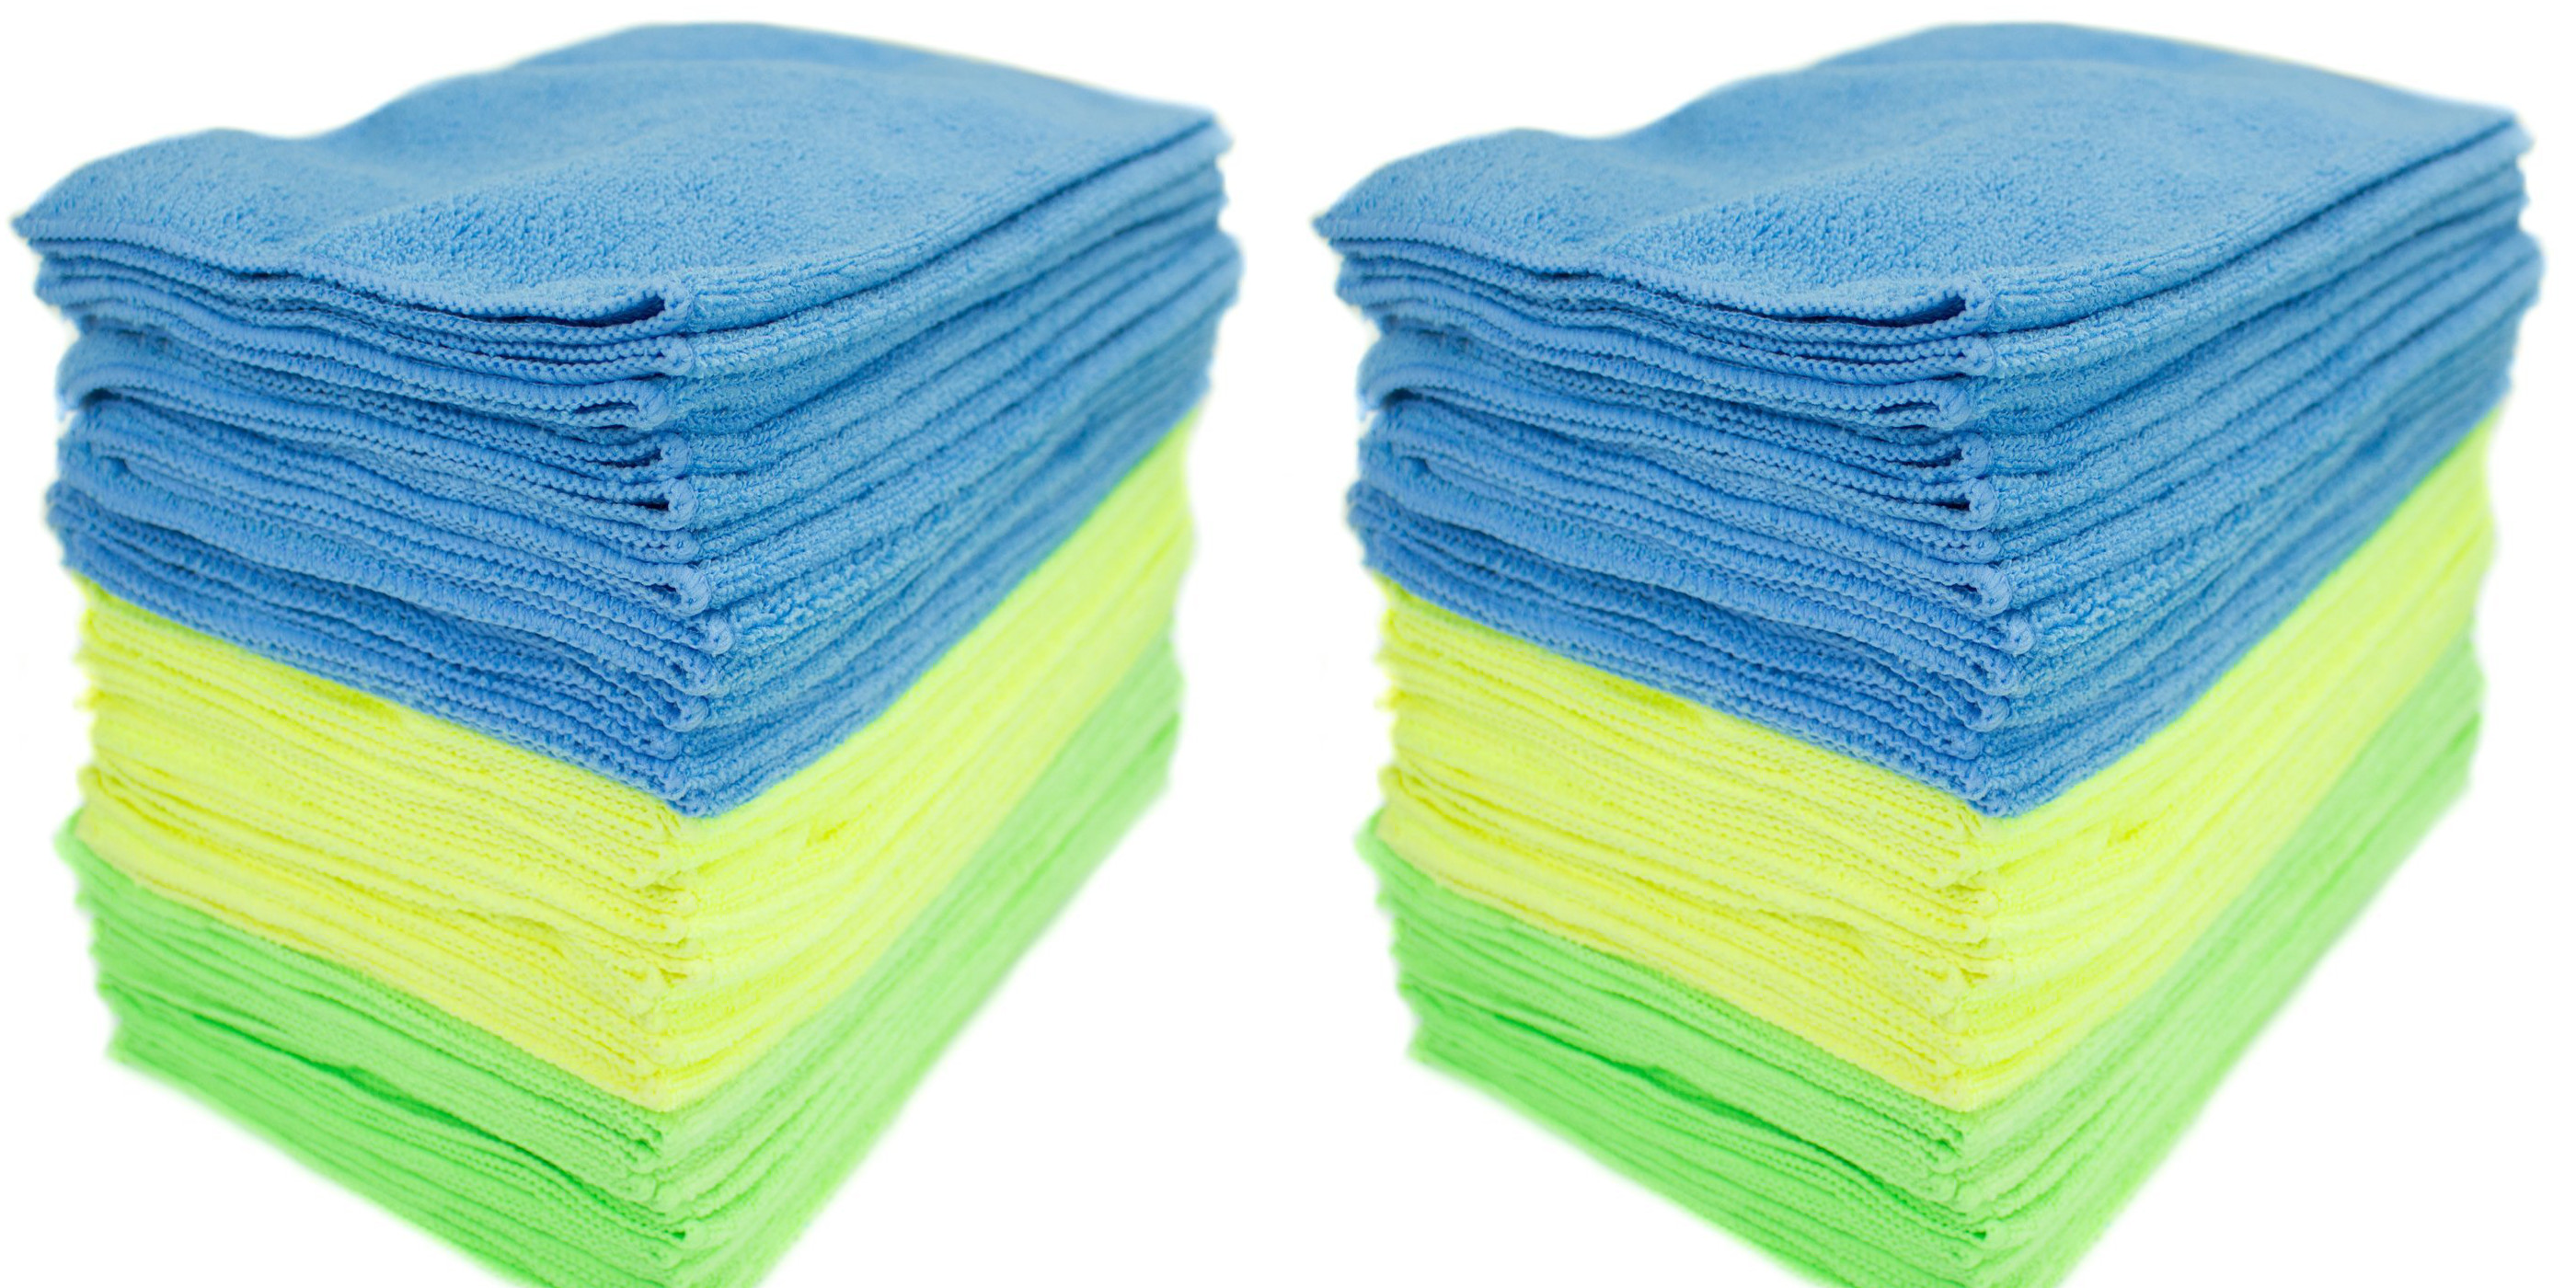 zwipes-microfiber-cleaning-cloths-5